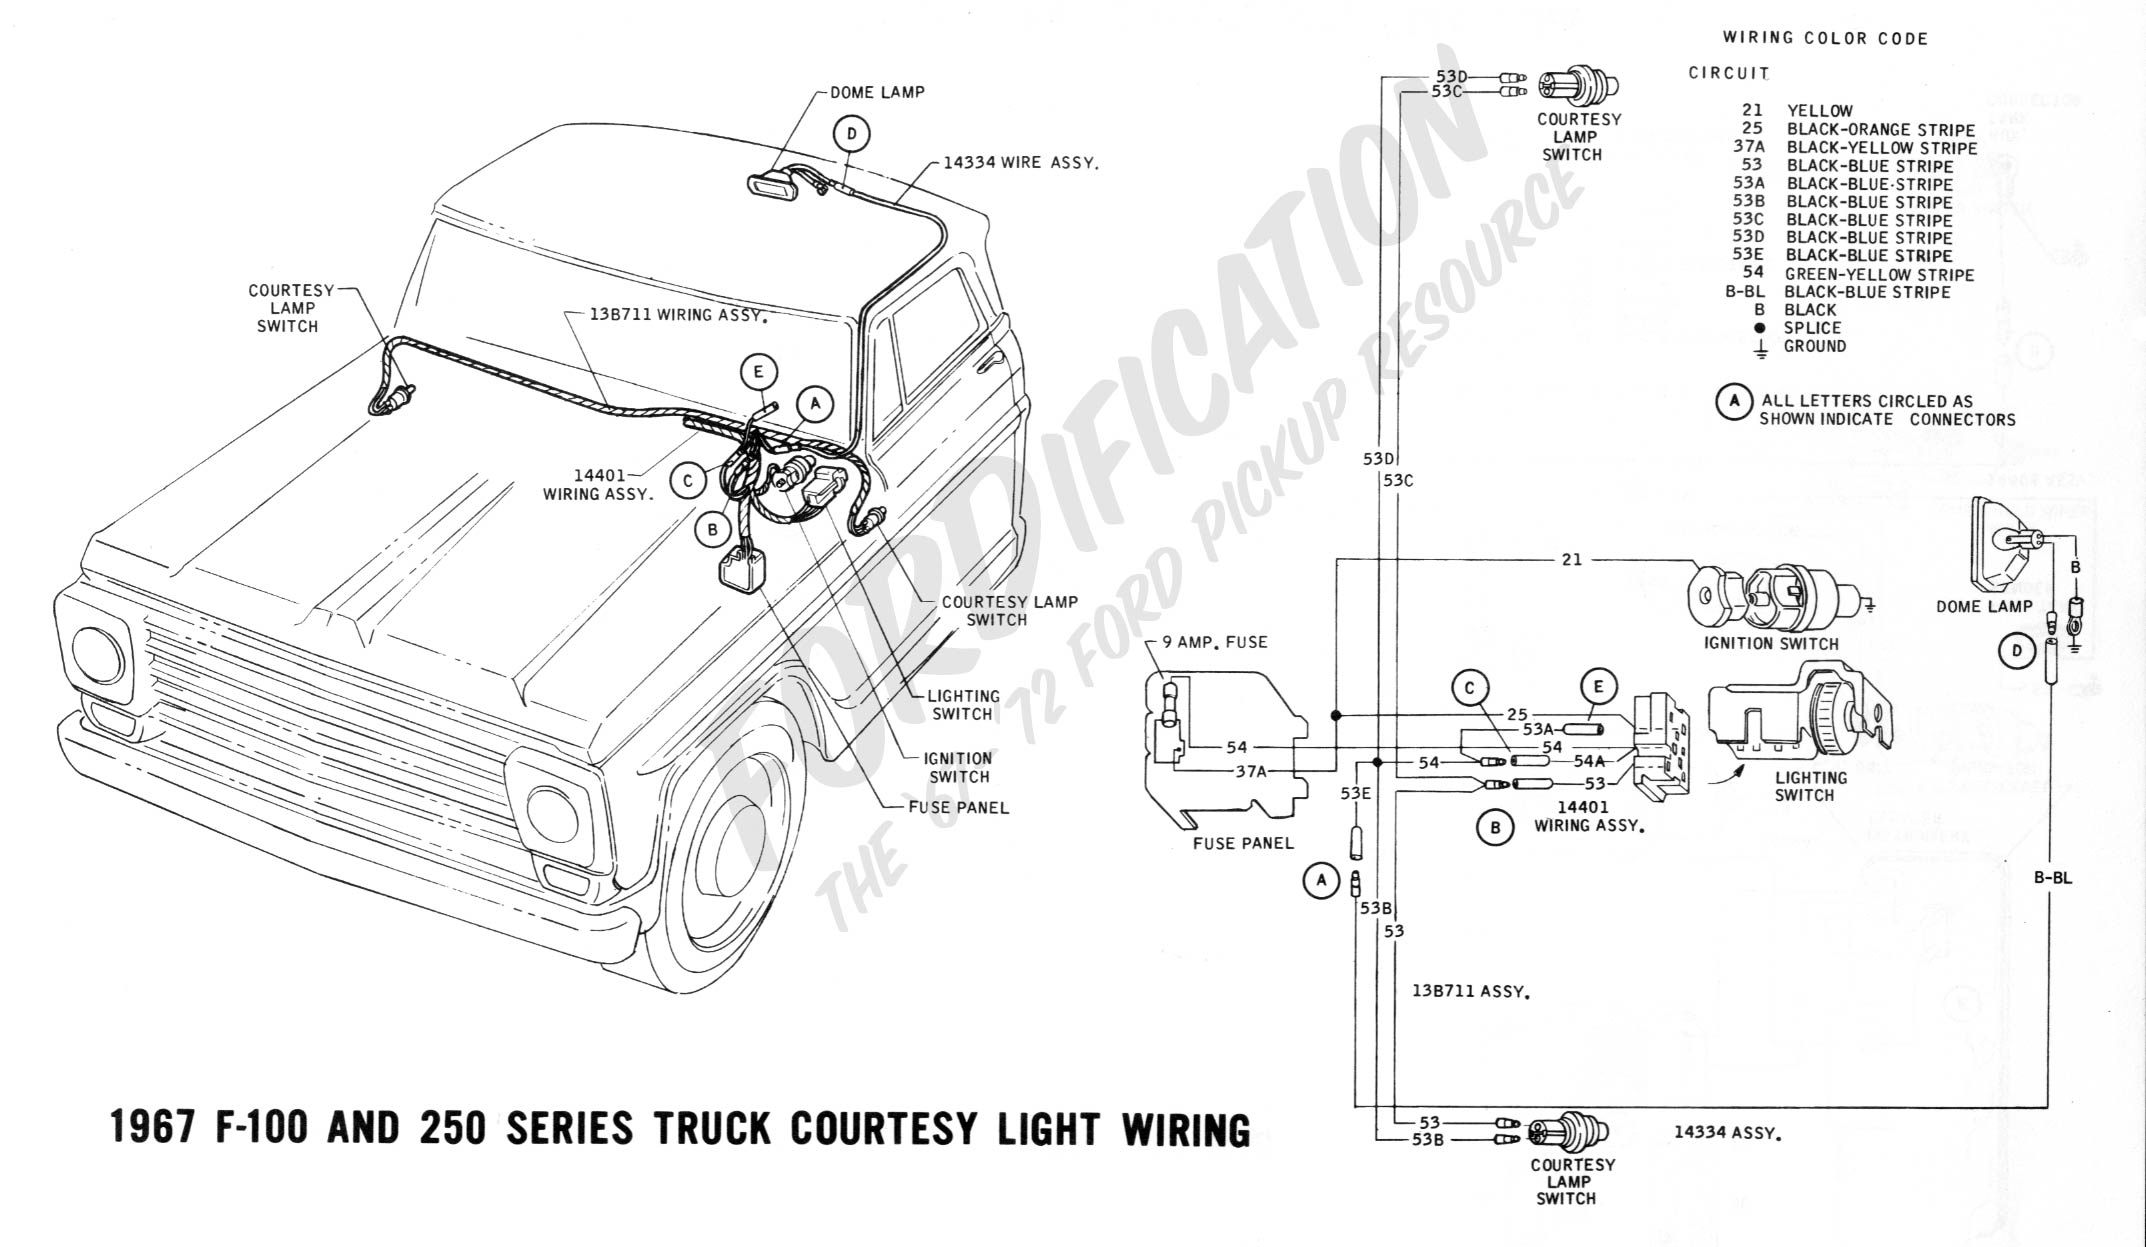 wiring in ignition switch in 1966 f100 ford truck enthusiasts forums 1966 porsche wiring diagram here's the 67 diagram for the domelight www fordification com tech wi rtesylight jpg